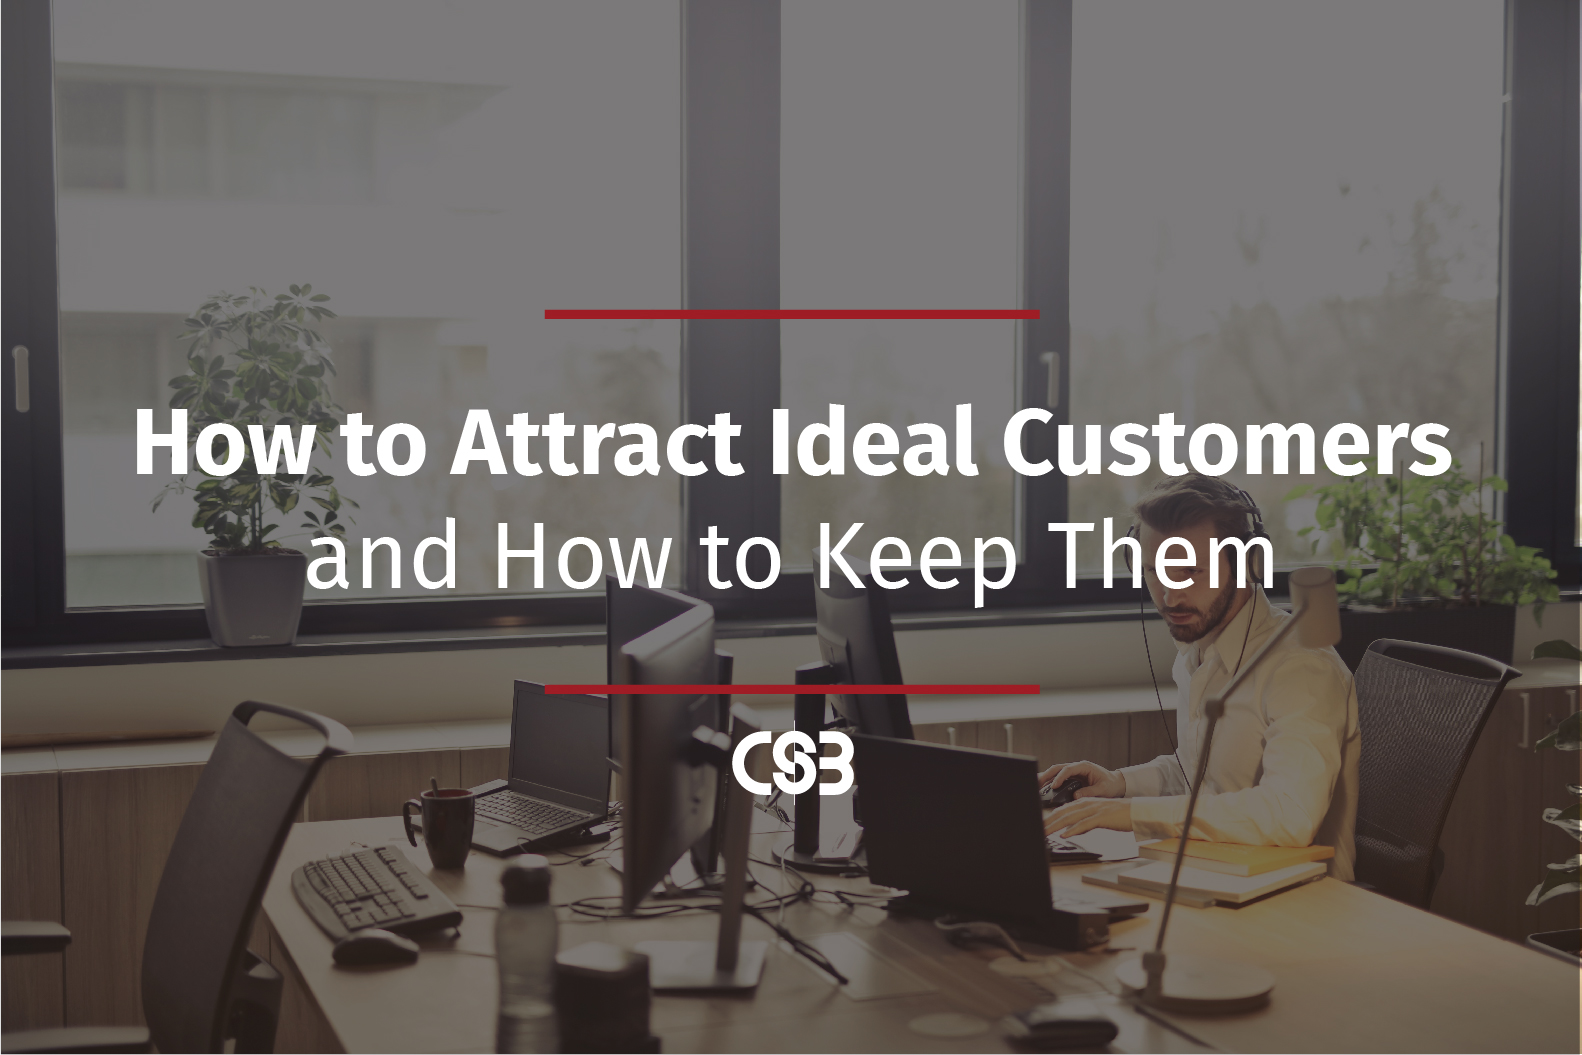 how-to-attract-ideal-customers-and-how-to-keep-them